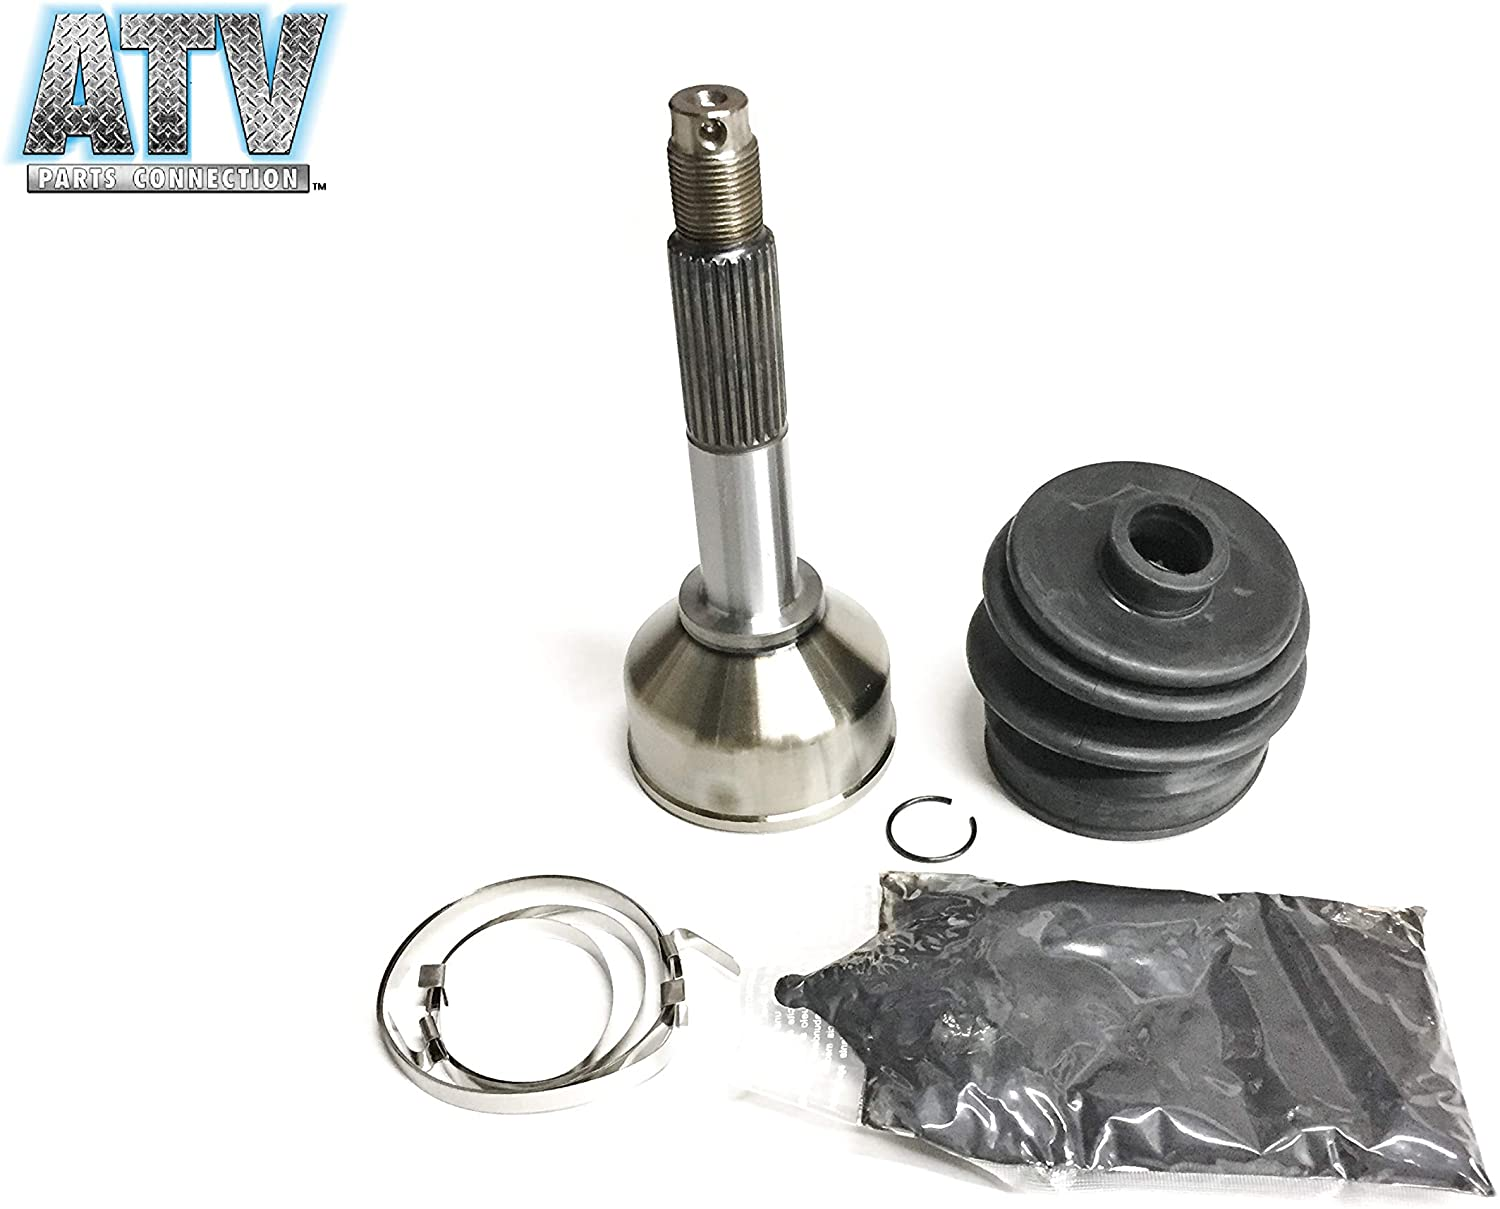 ATVPC Rear Outer CV Joint Kit for Kawasaki Teryx 750 4x4 2008-2012 UTV